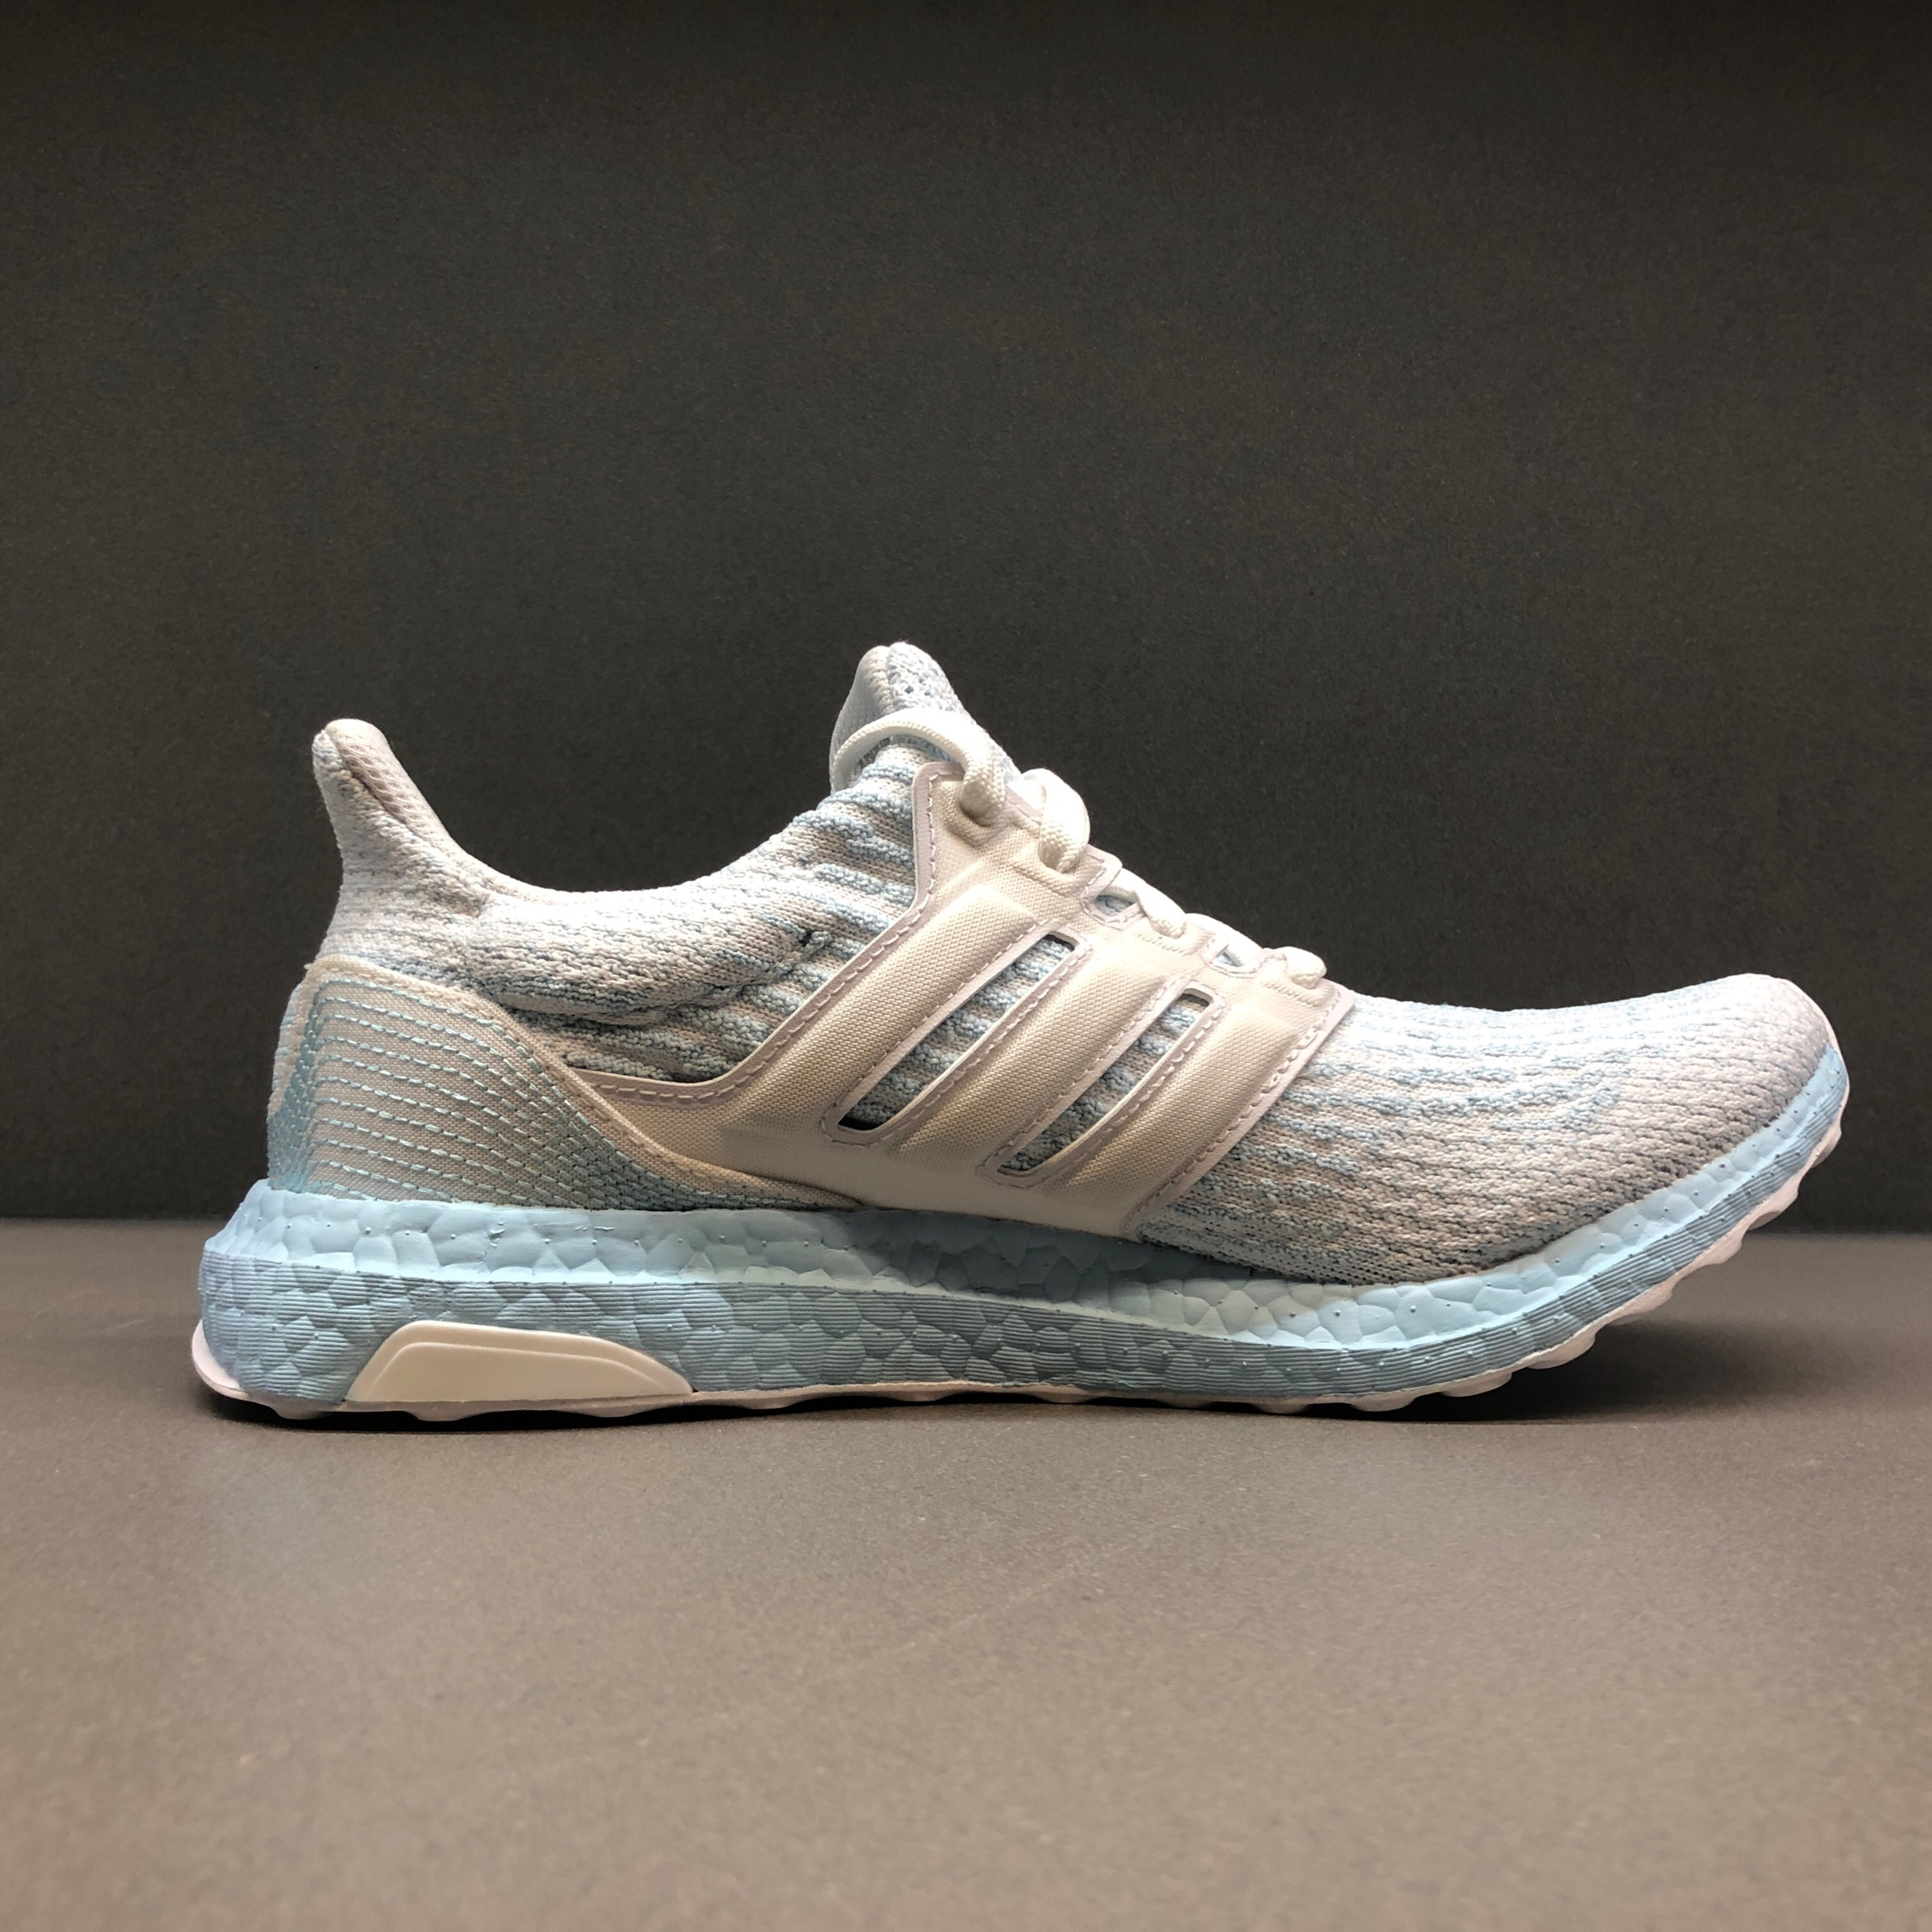 low priced 5f641 8bc3c Adidas Ultra Boost 3.0 Parley Oceans Custom